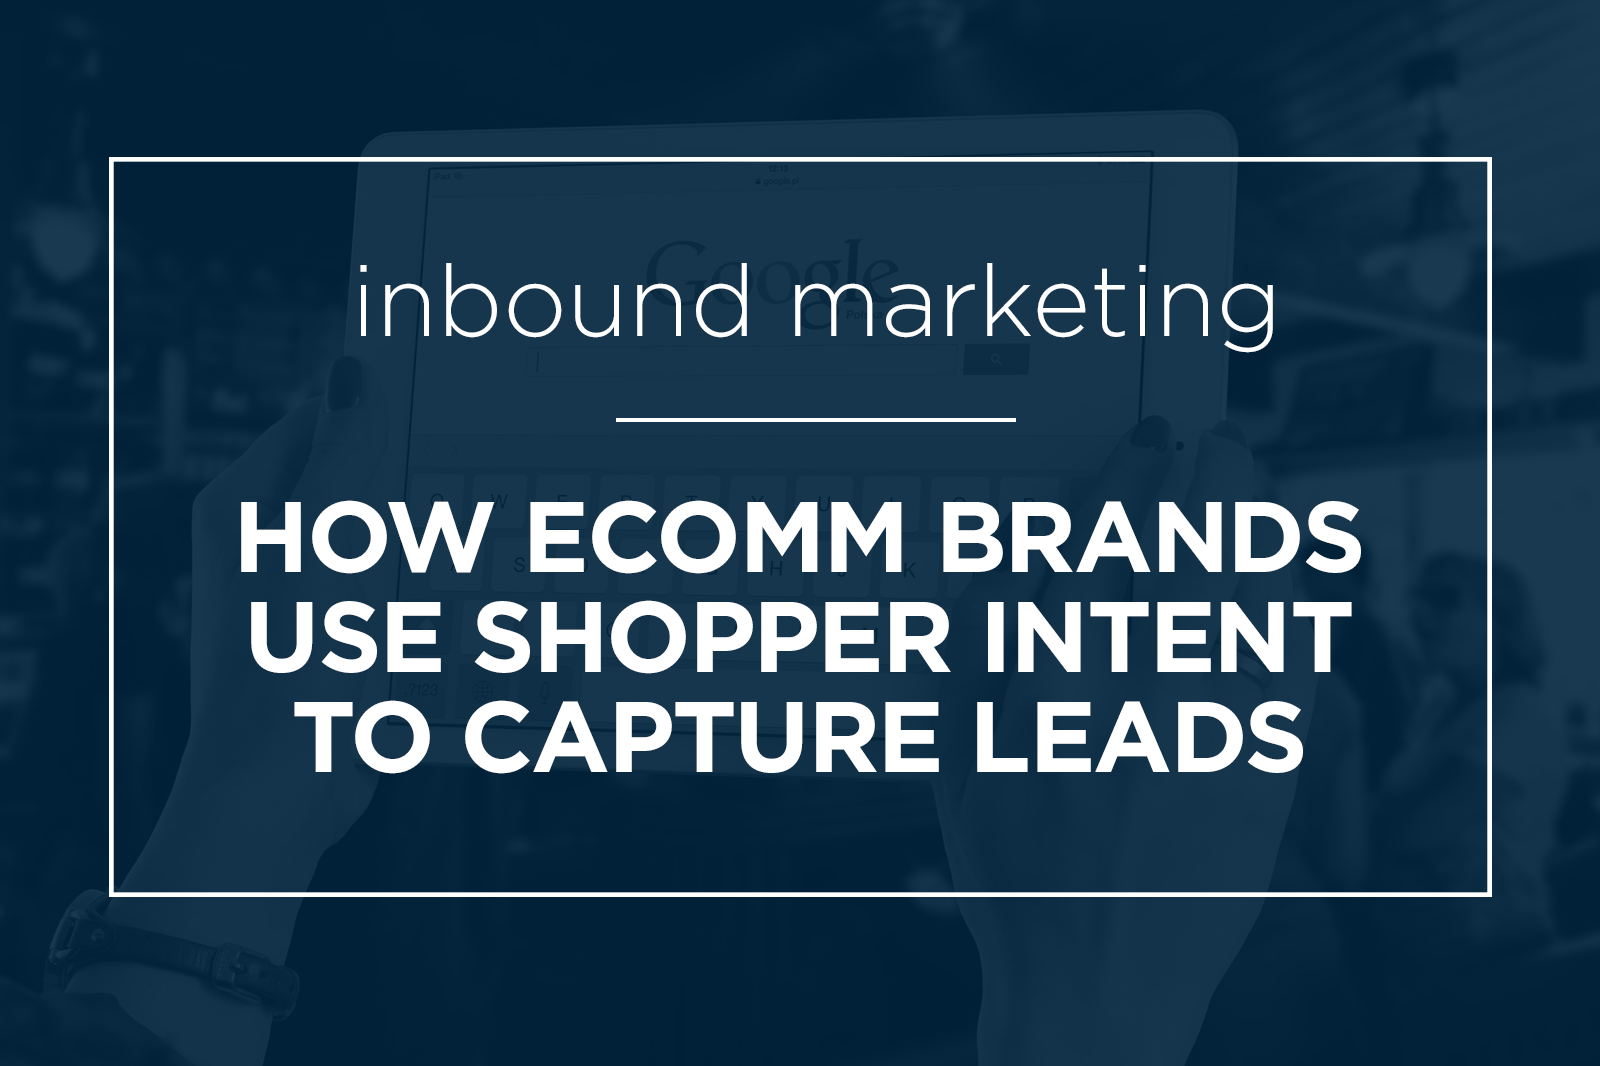 how-ecomm-brands-use-shopper-intent-to-capture-leads